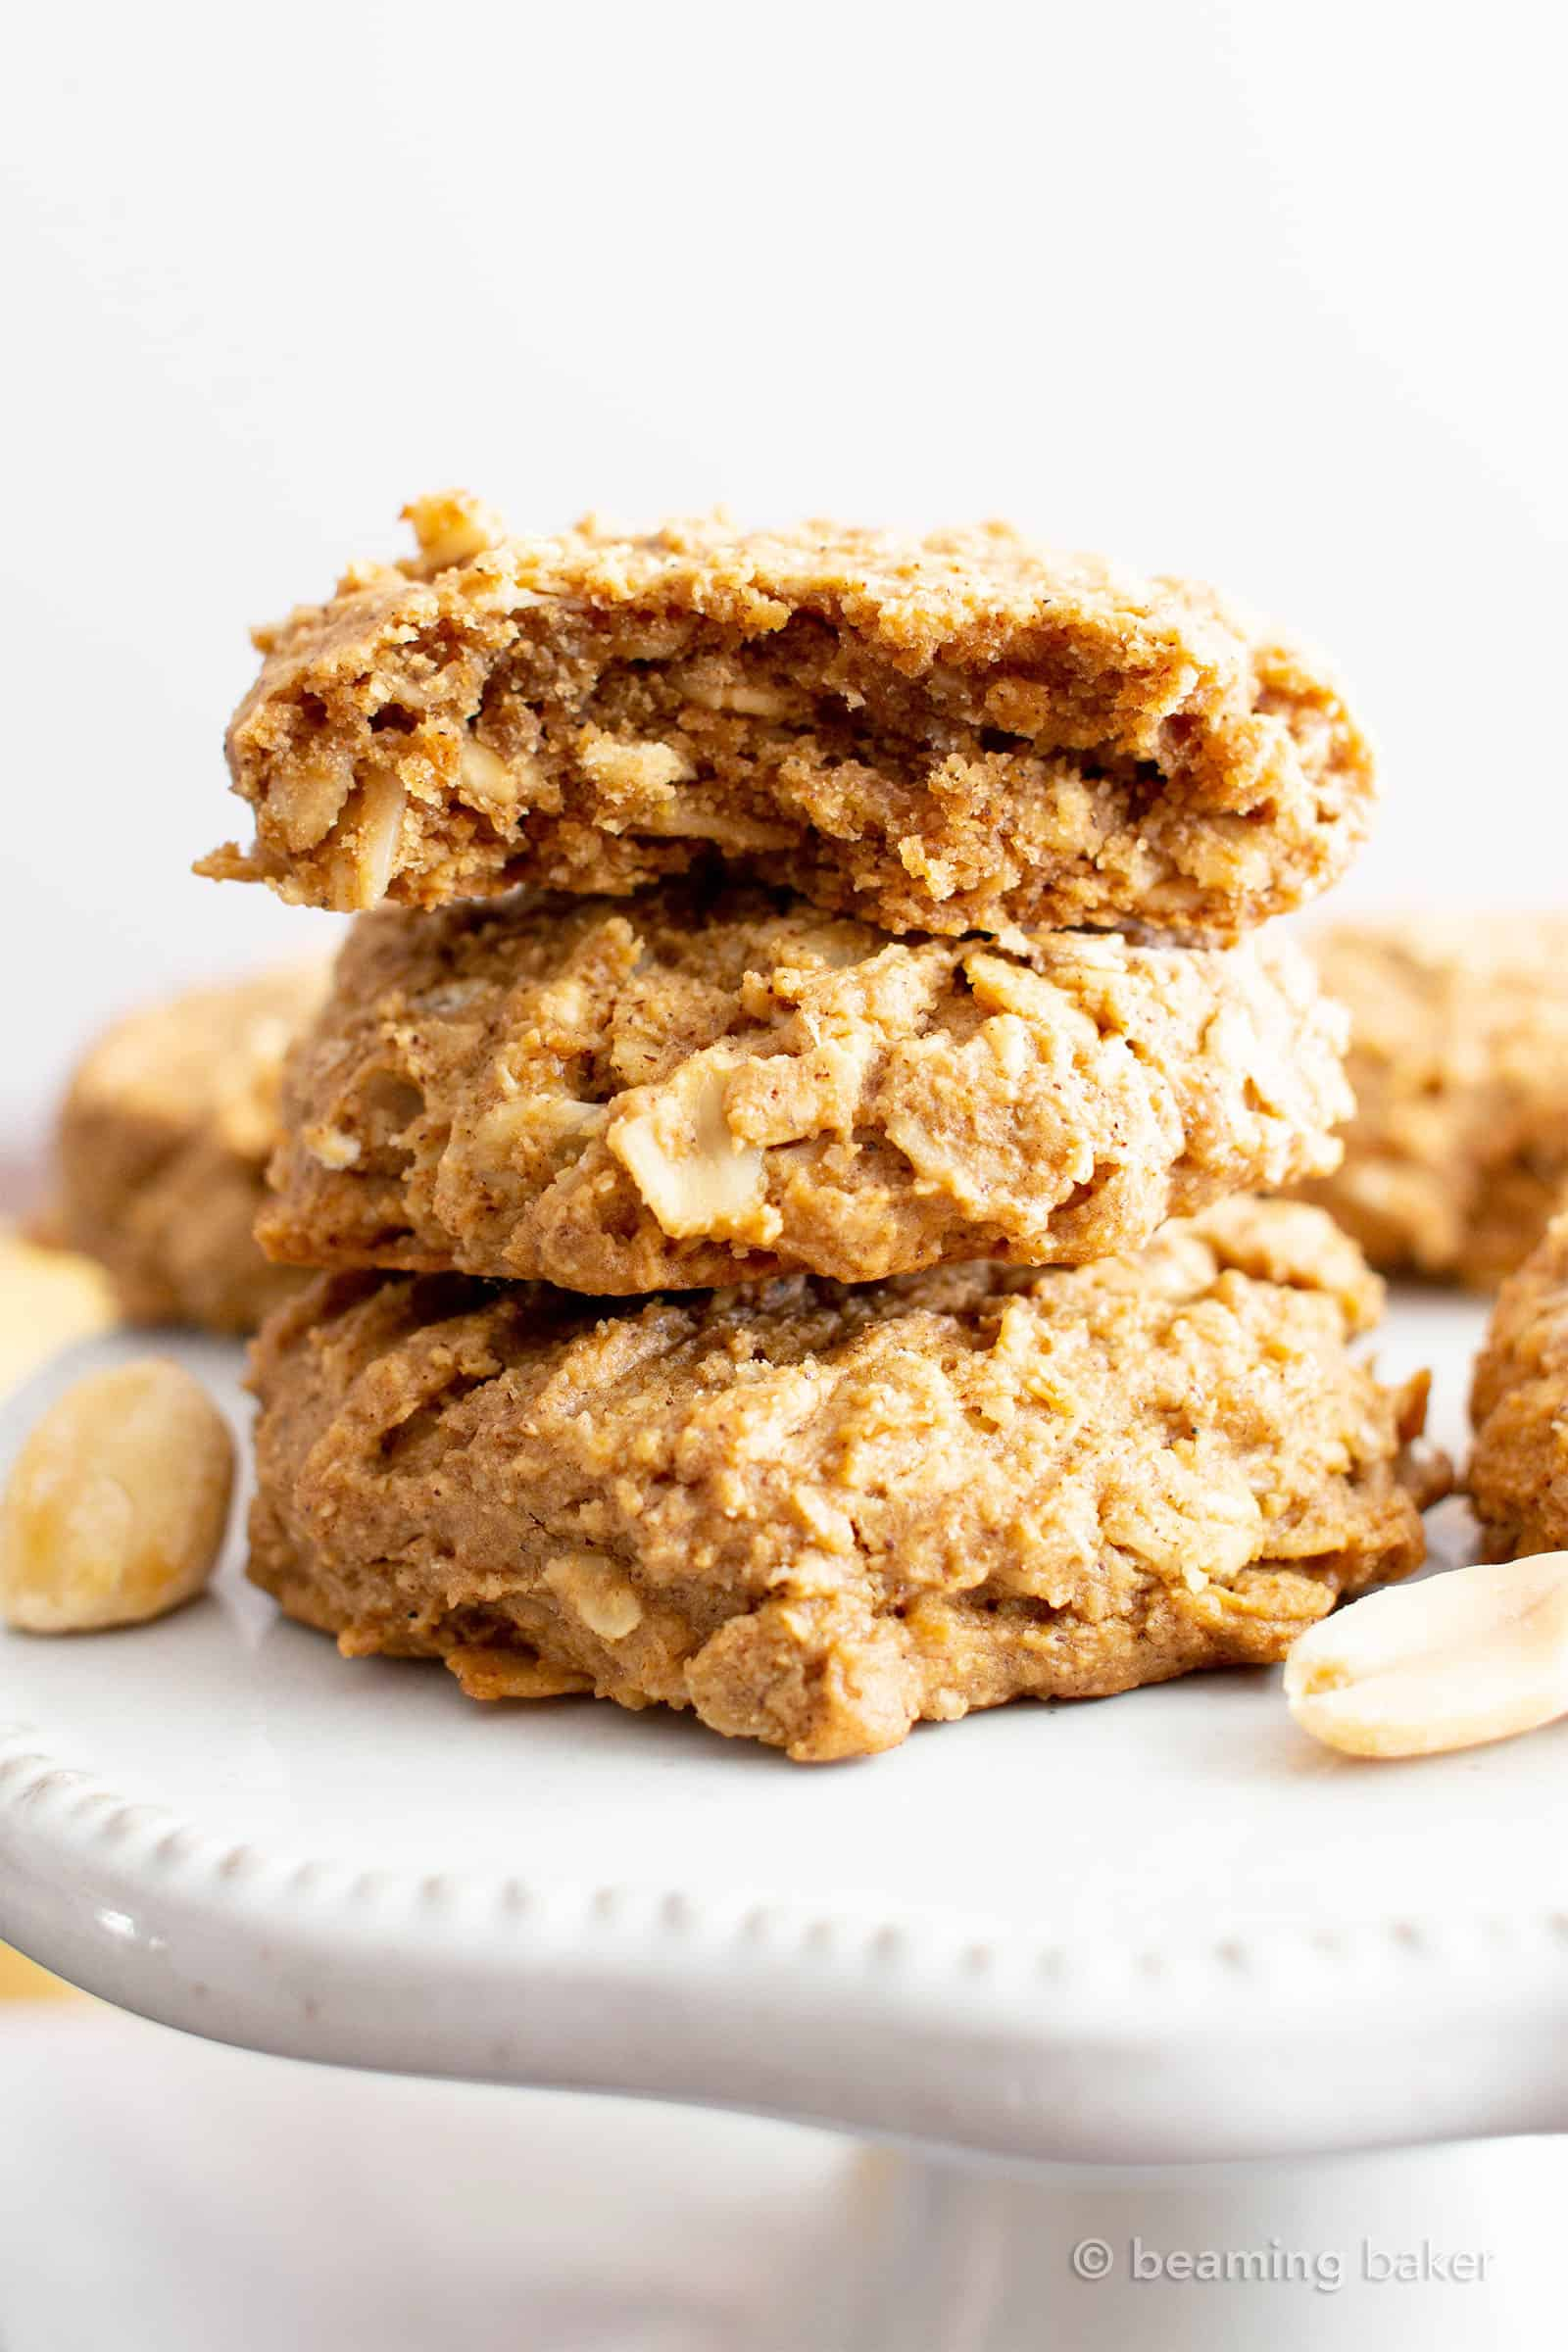 Oil-Free Peanut Butter Oatmeal Breakfast Cookies (V, GF): chewy 'n healthy breakfast cookies bursting with peanut butter flavor and packed with nutritious ingredients! #Vegan #GlutenFree #BreakfastCookies #BeamingBaker #GlutenFreeVegan #OilFree #PeanutButter #Oatmeal #VeganCookies | Recipe at BeamingBaker.com